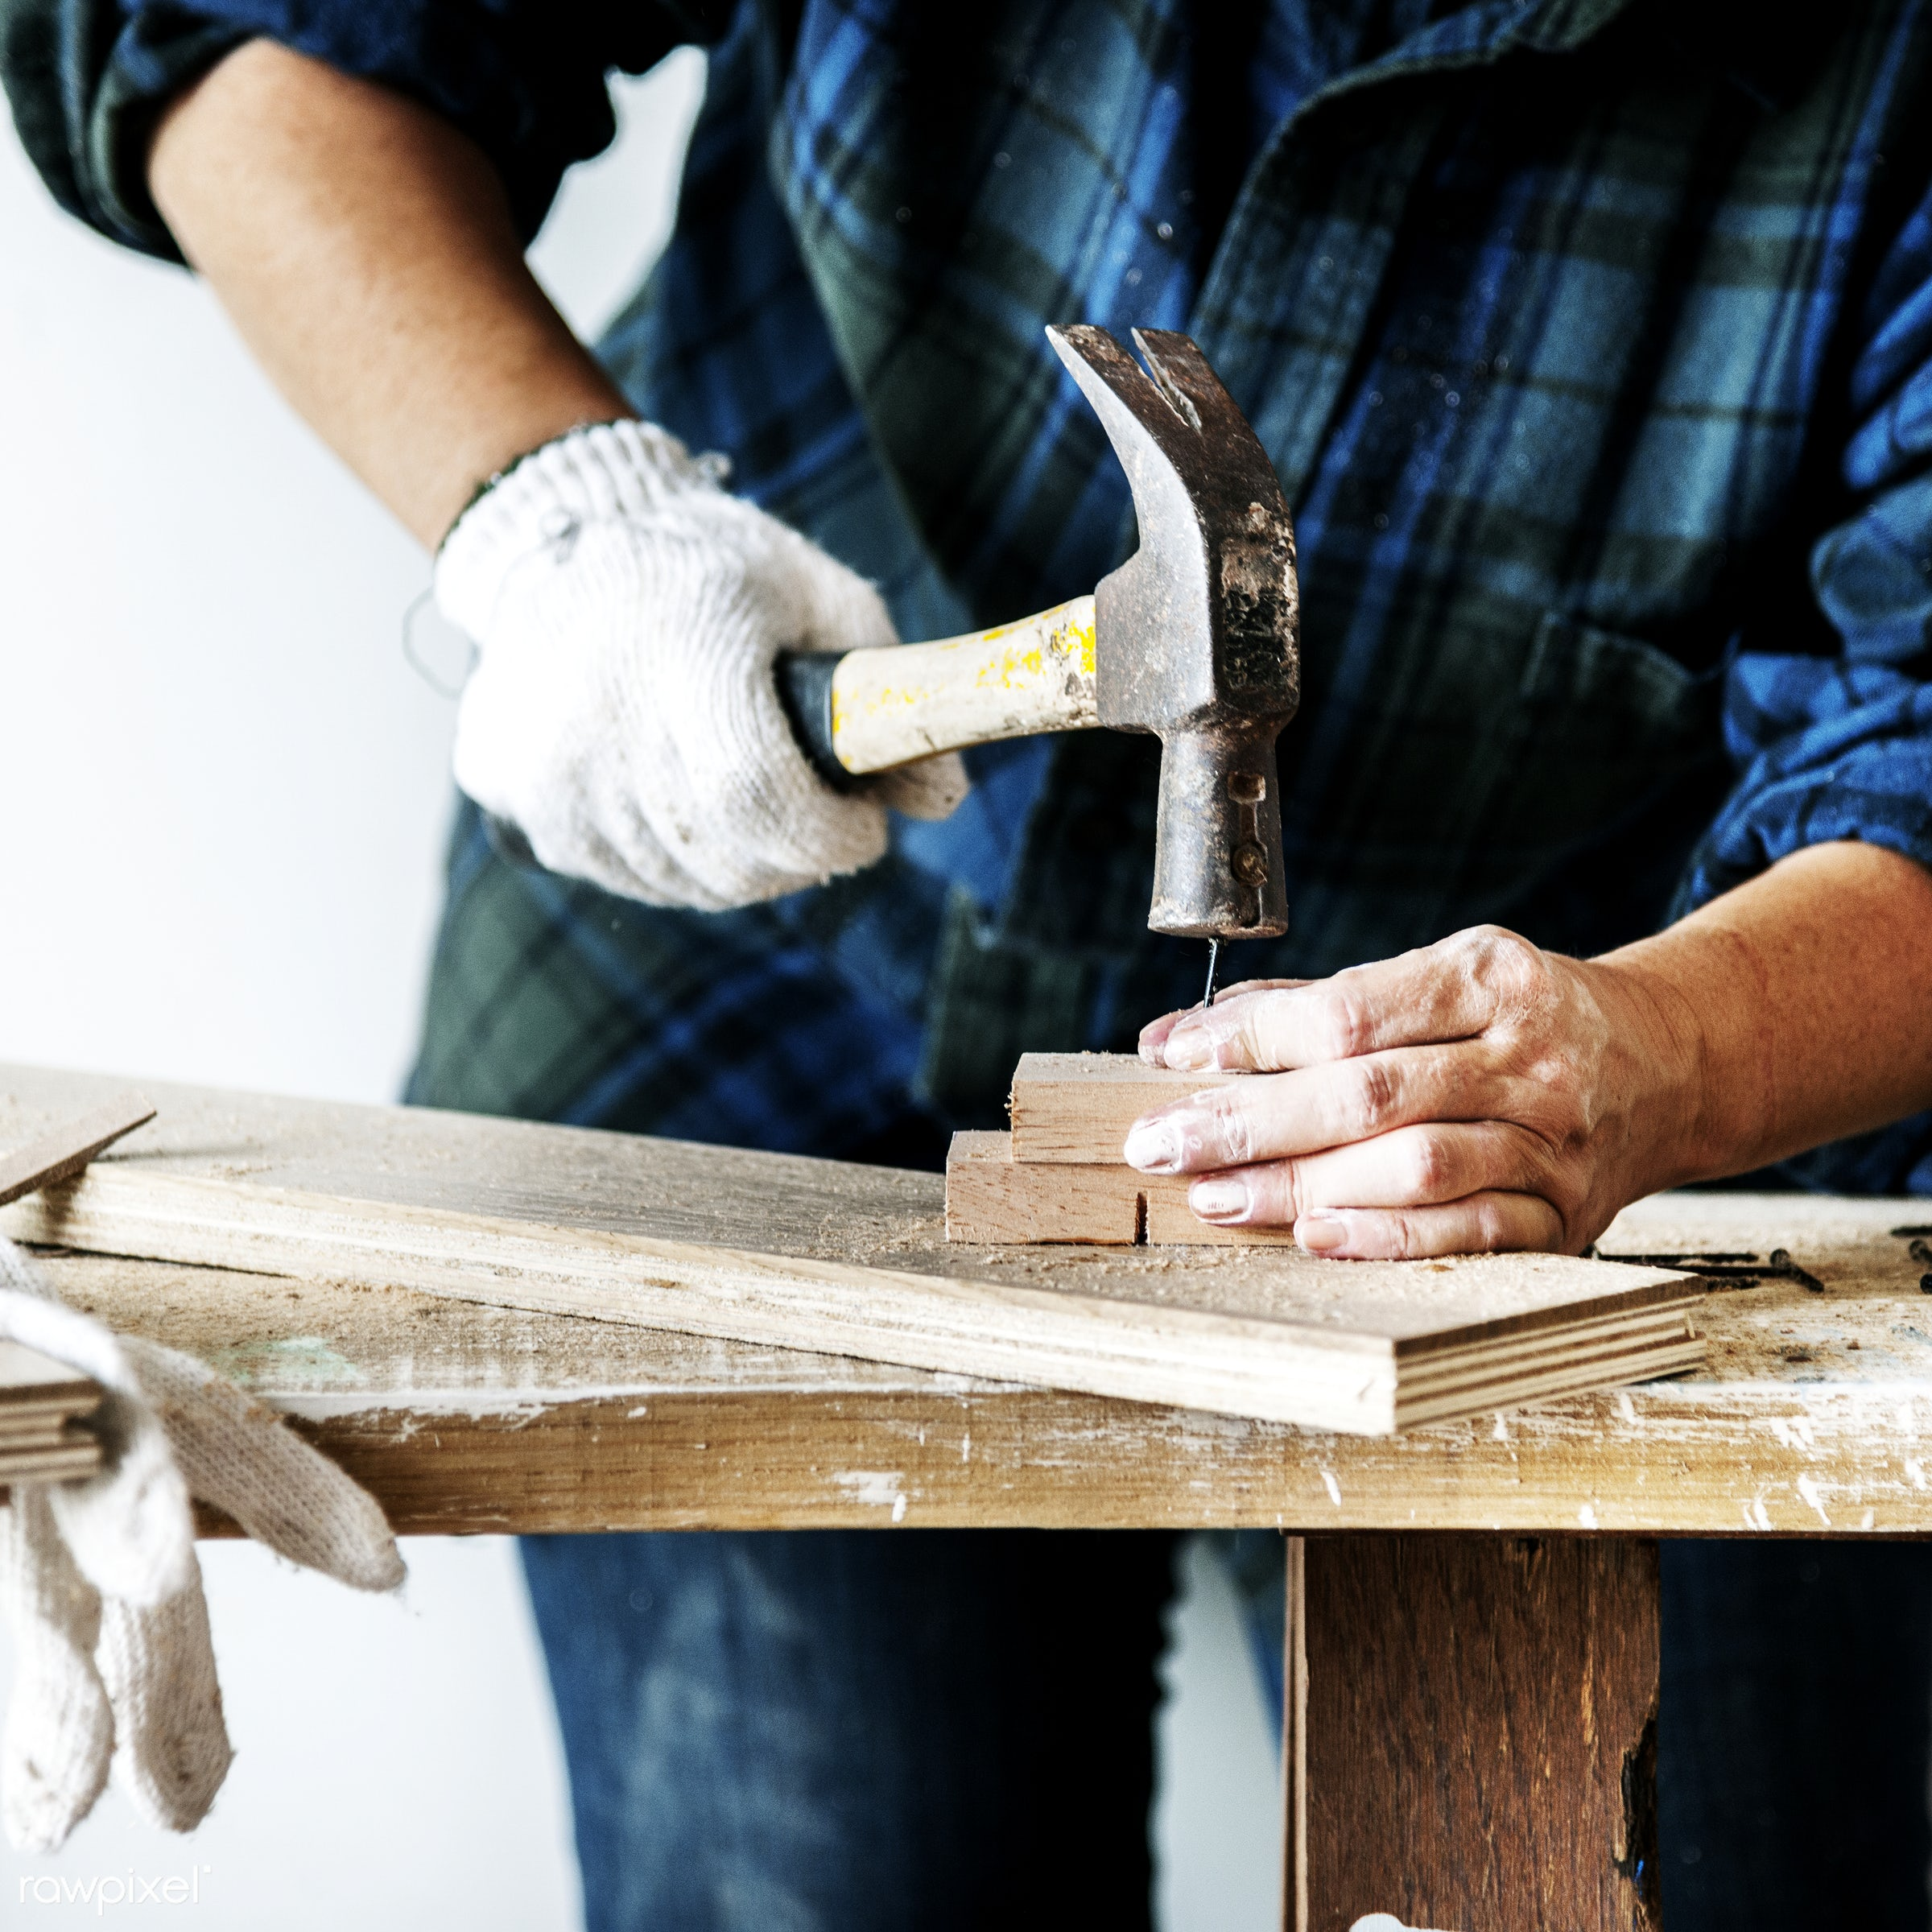 work, construction, handyman, workshop, wood, worker, wooden, woman, industry, hammer, professional, carpentry, woodwork,...